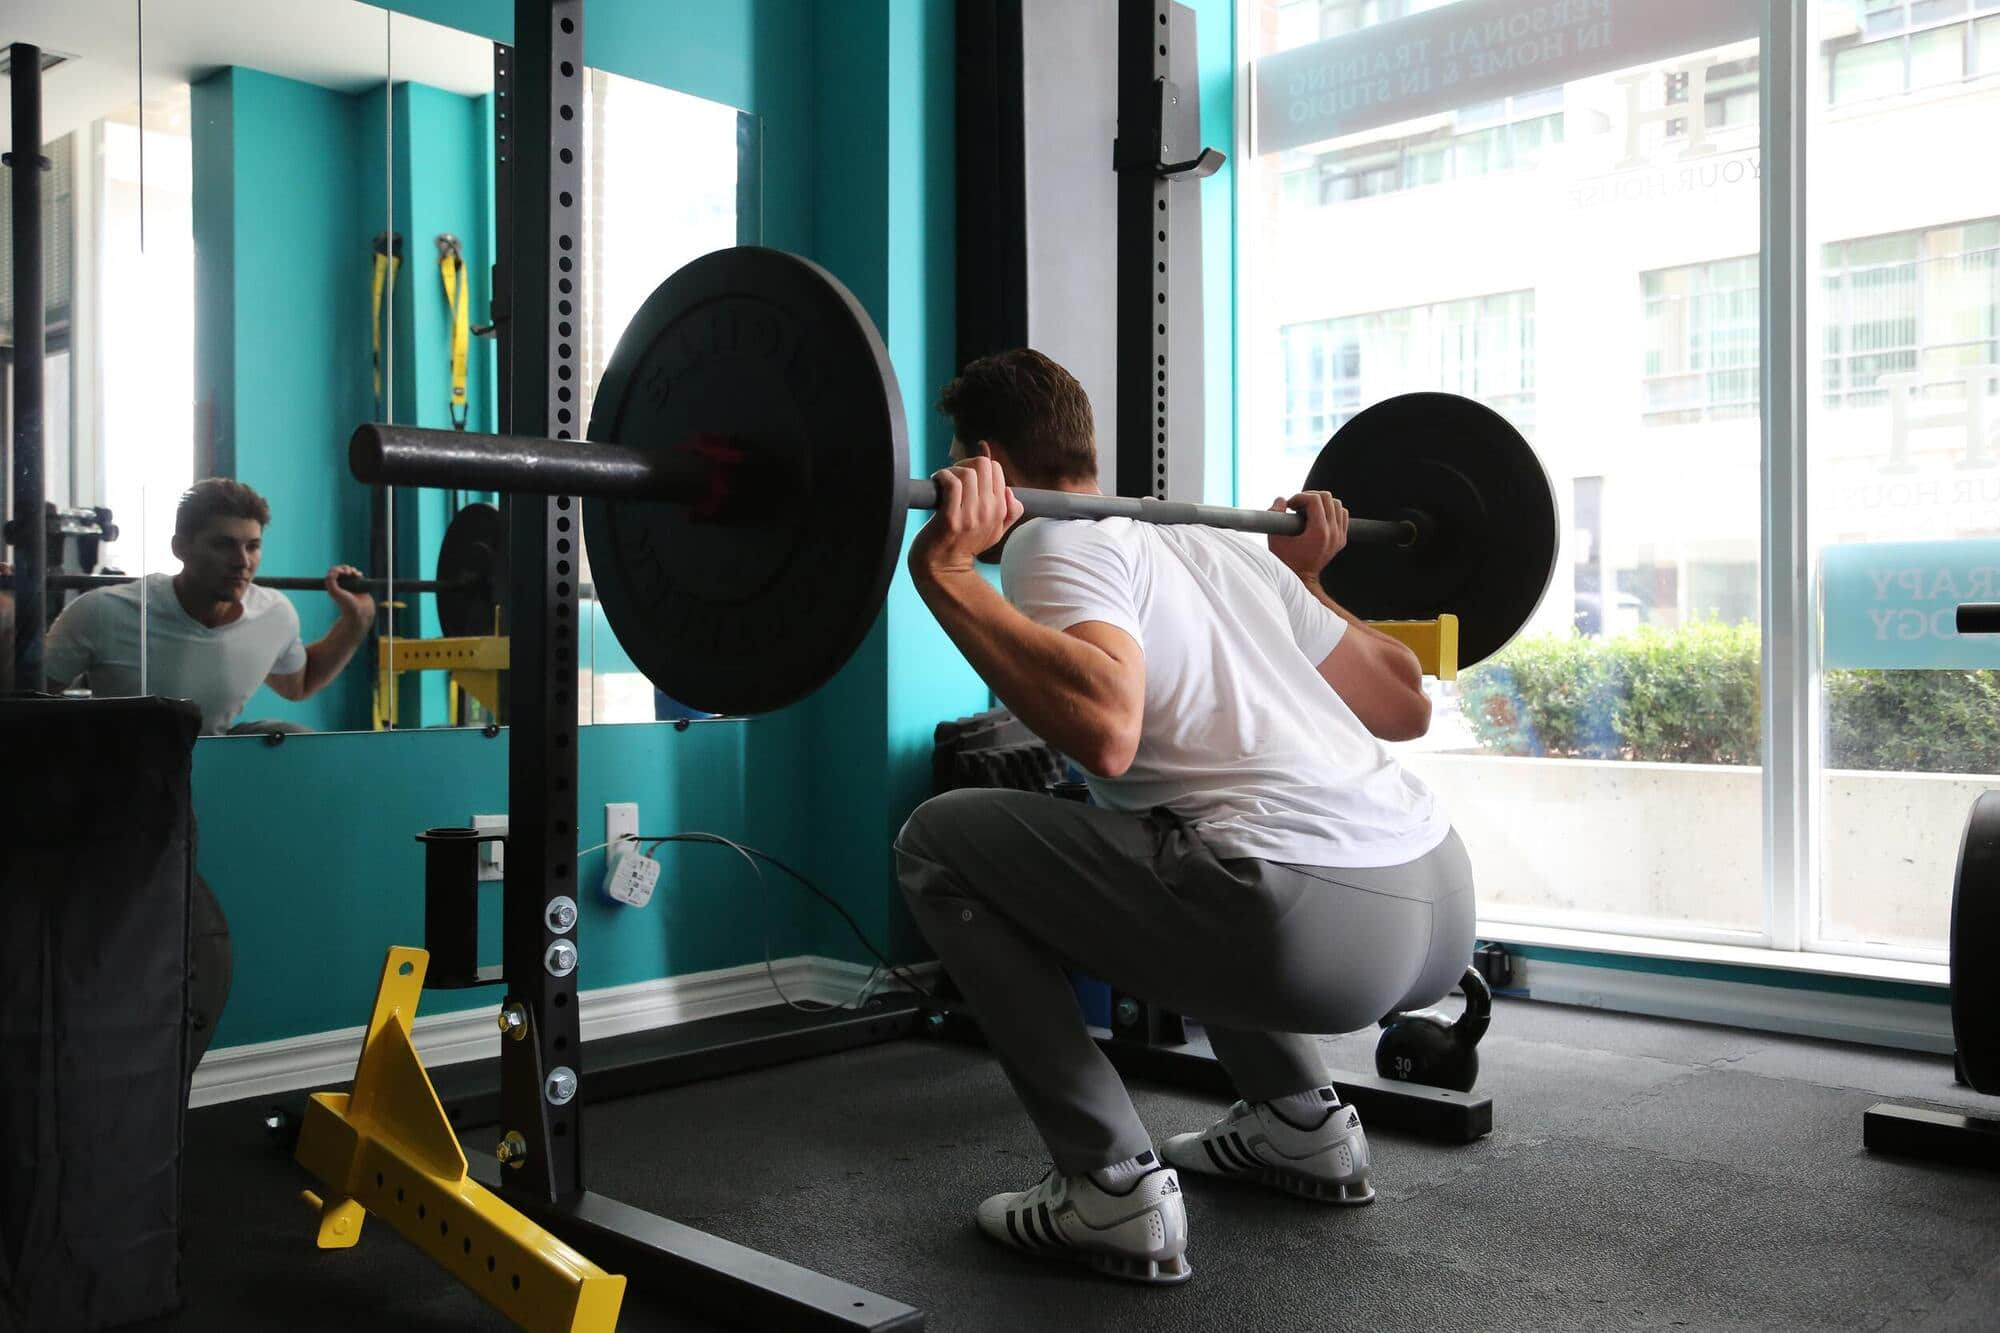 squat racks with pull-up bars